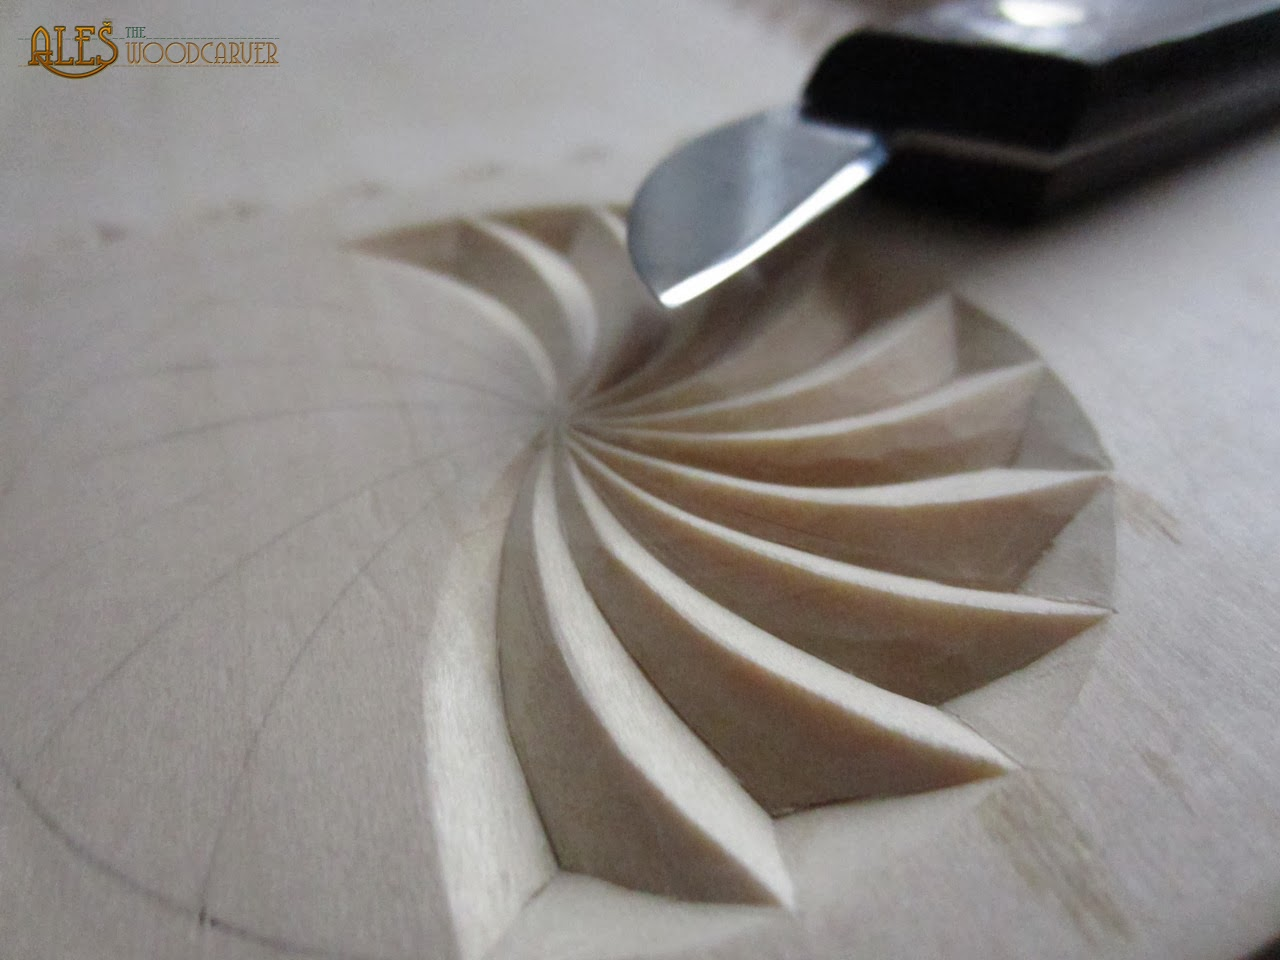 Chip carving design adobe creative cloud tools